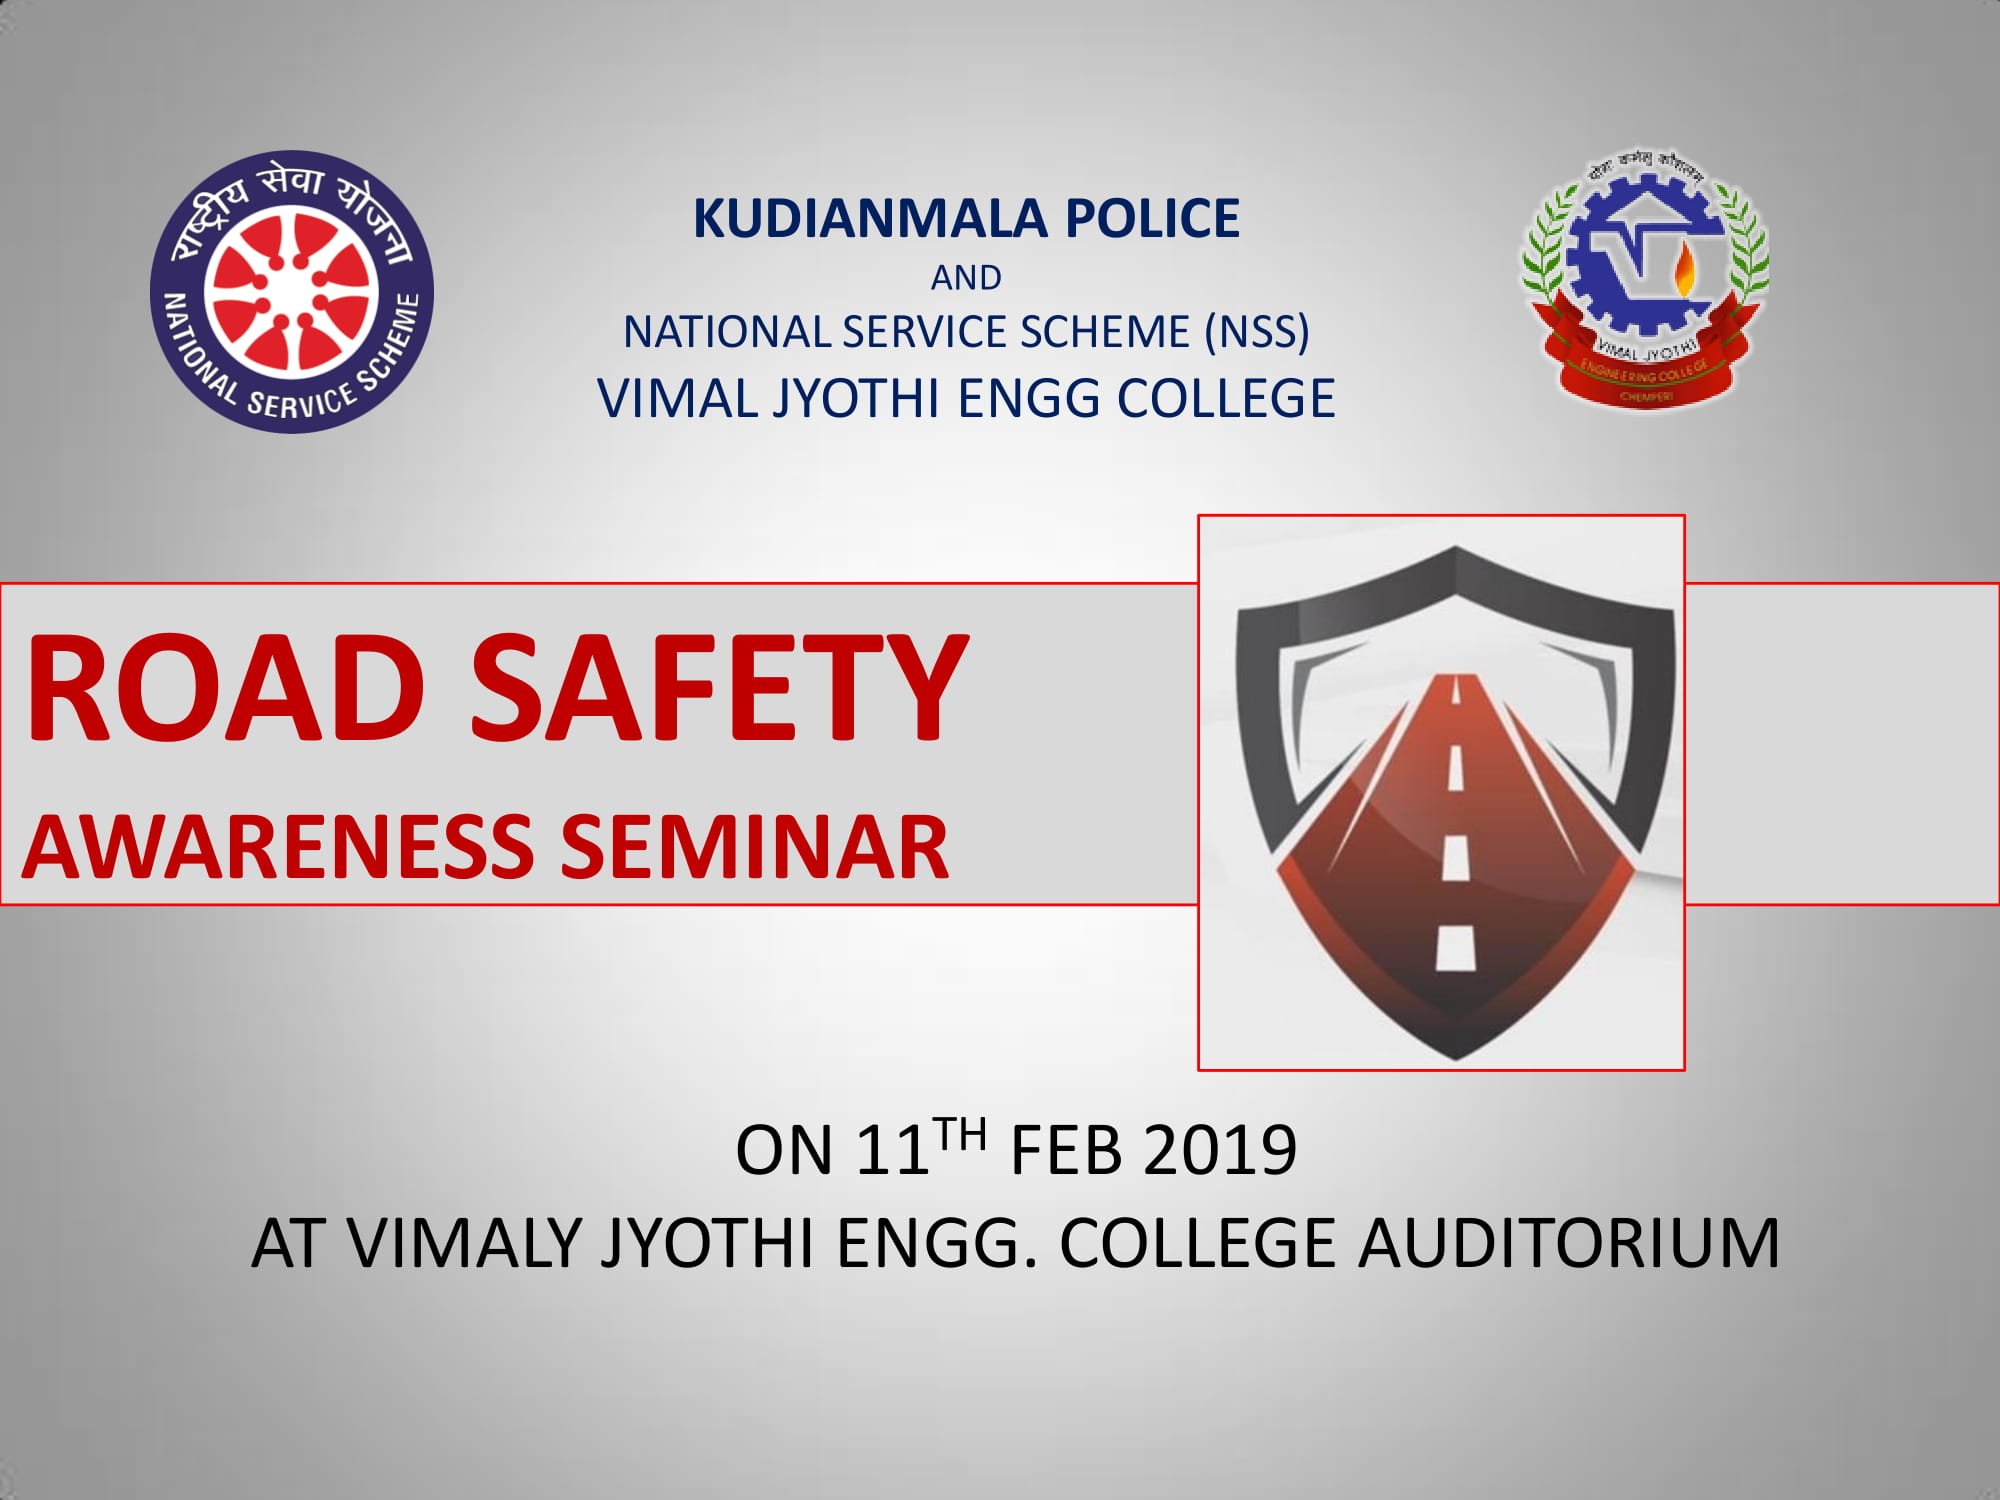 ROAD SAFETY AWARENESS SEMINAR